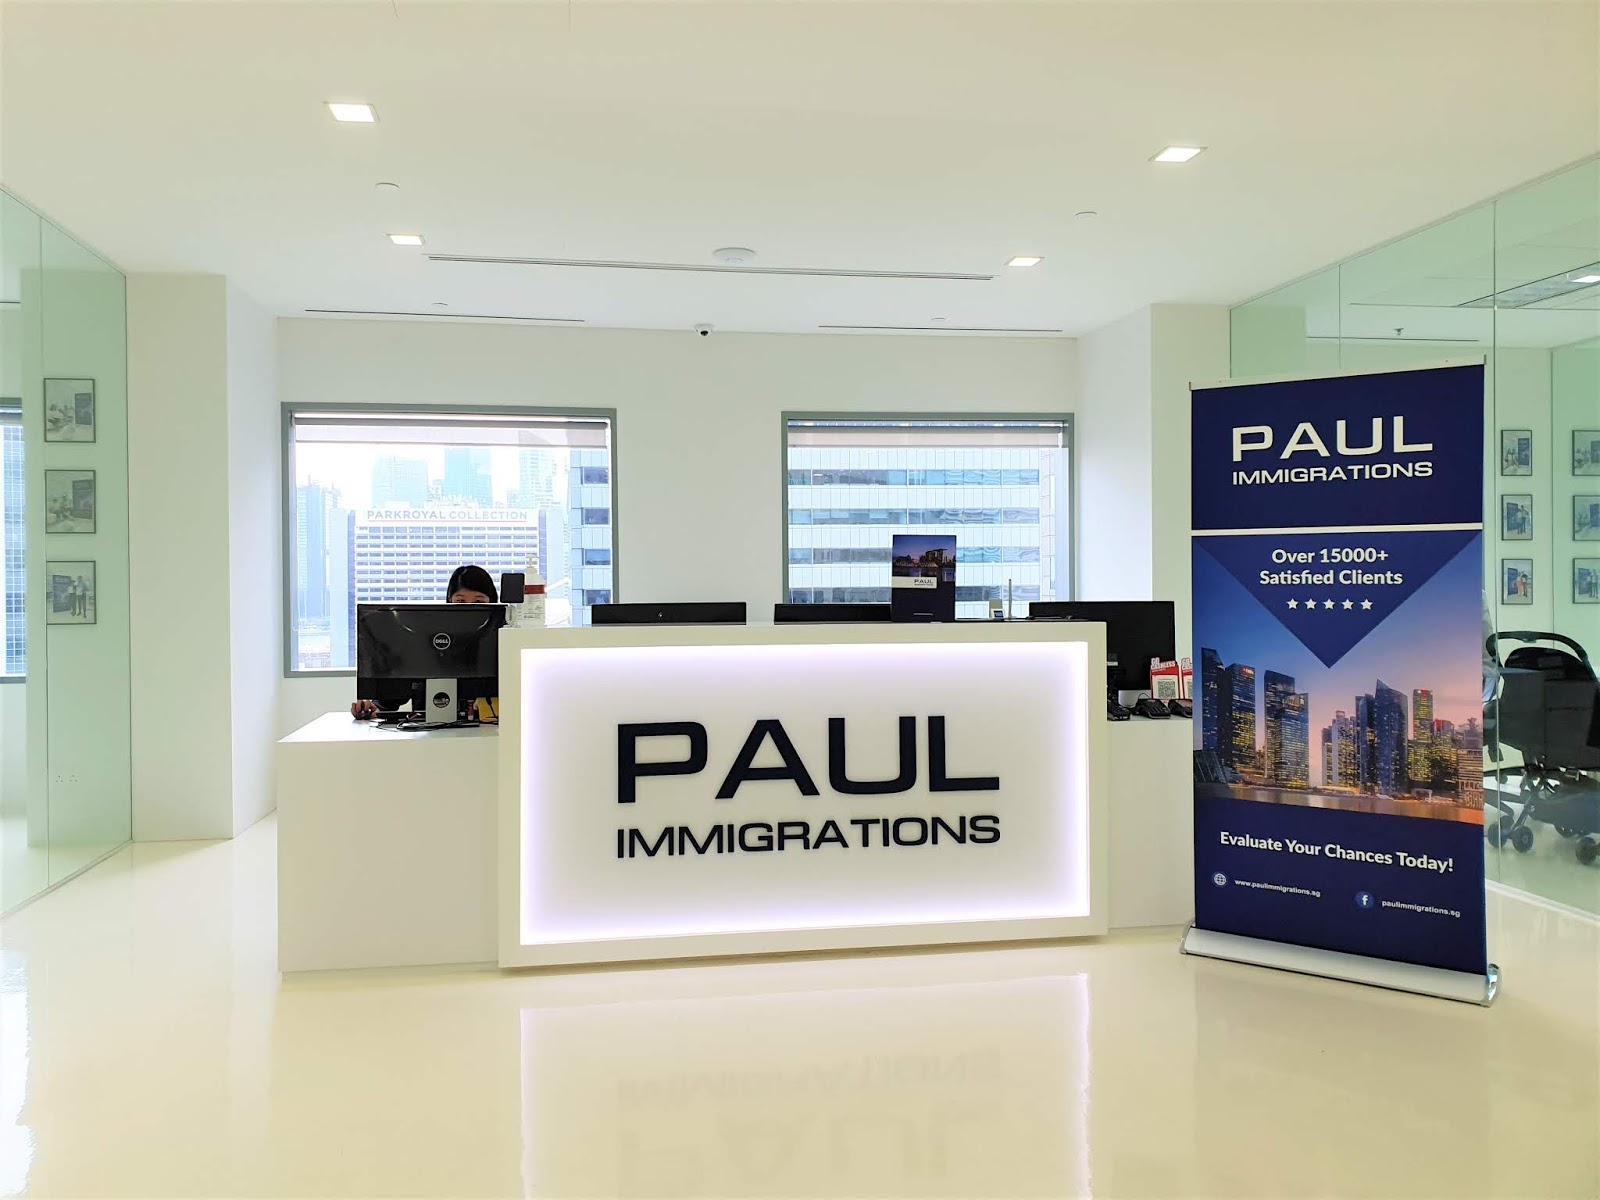 The Singaporean Sisters - Number 1 Luxury Lifestyle Blog in SINGAPORE!: Paul  Immigrations Reviews - World's Best Cities - Living in Singapore